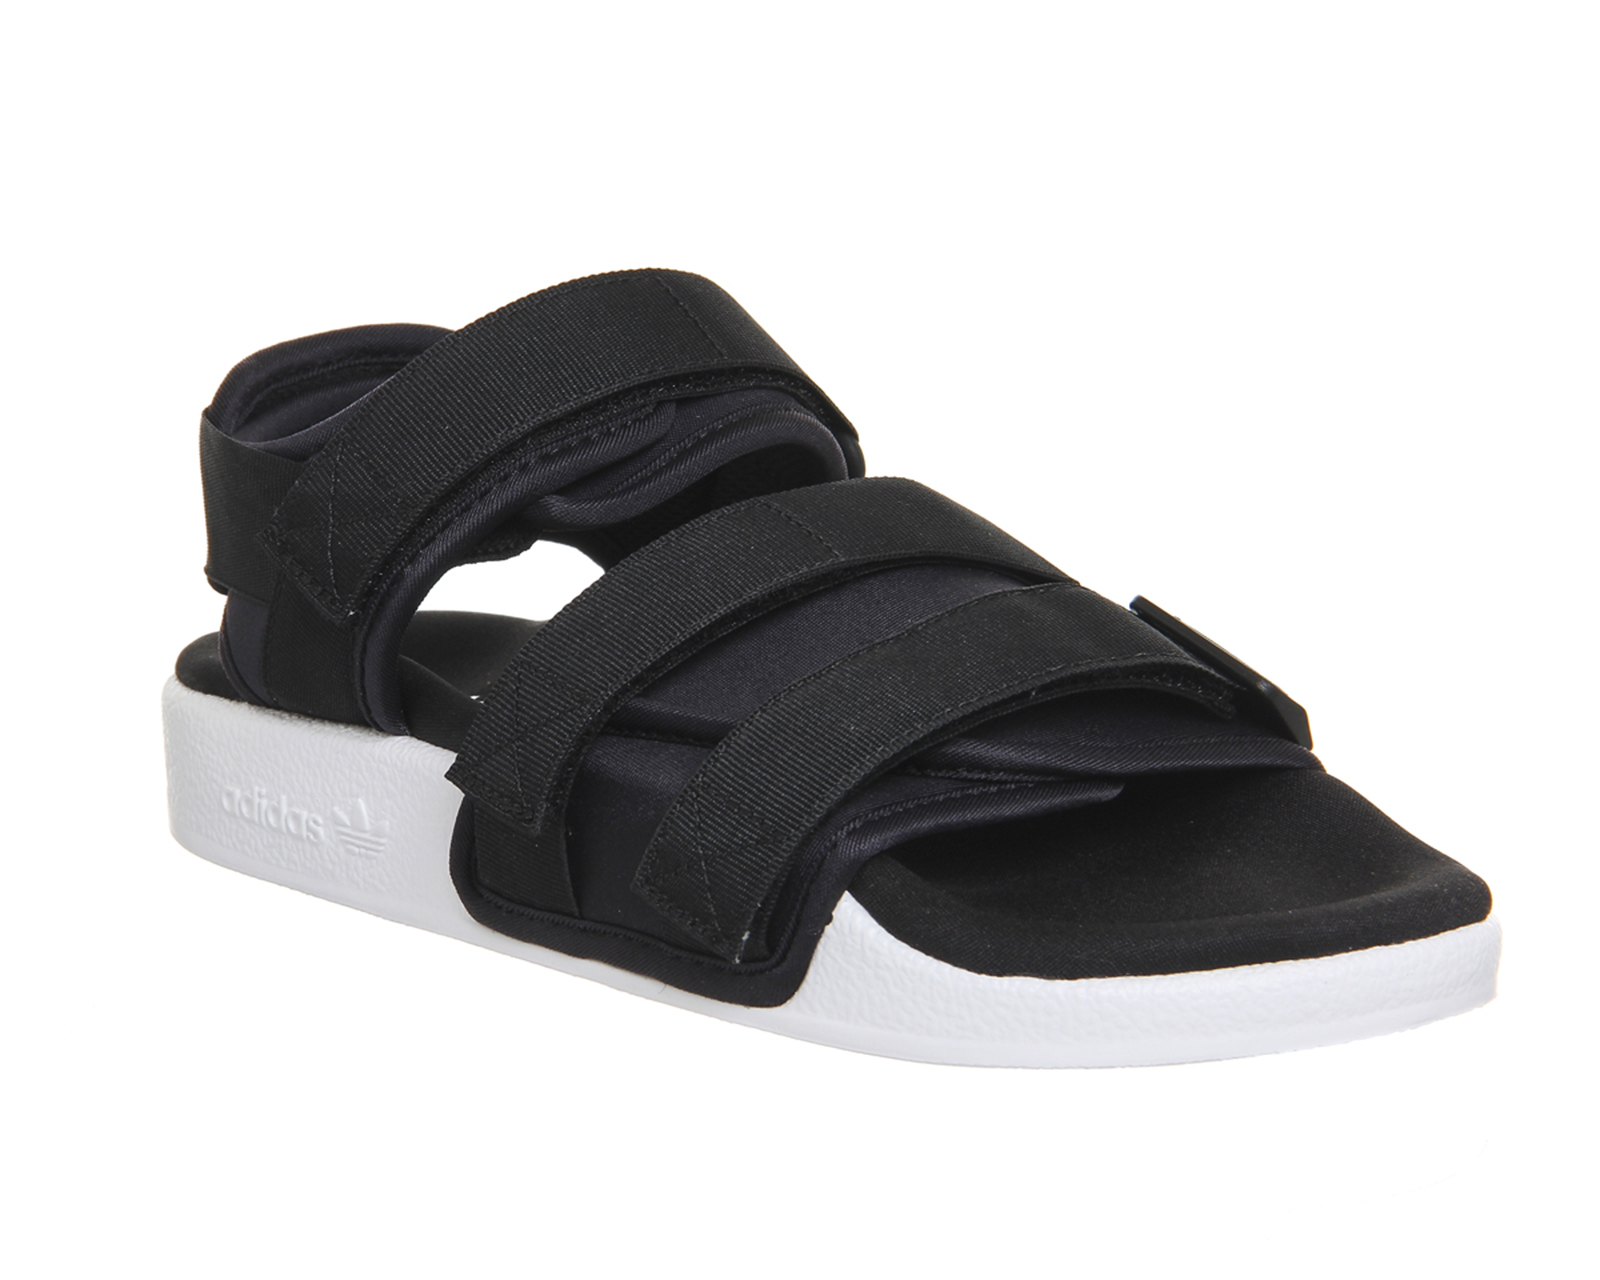 6bcc27f3f Buy adidas originals sandals   OFF58% Discounted